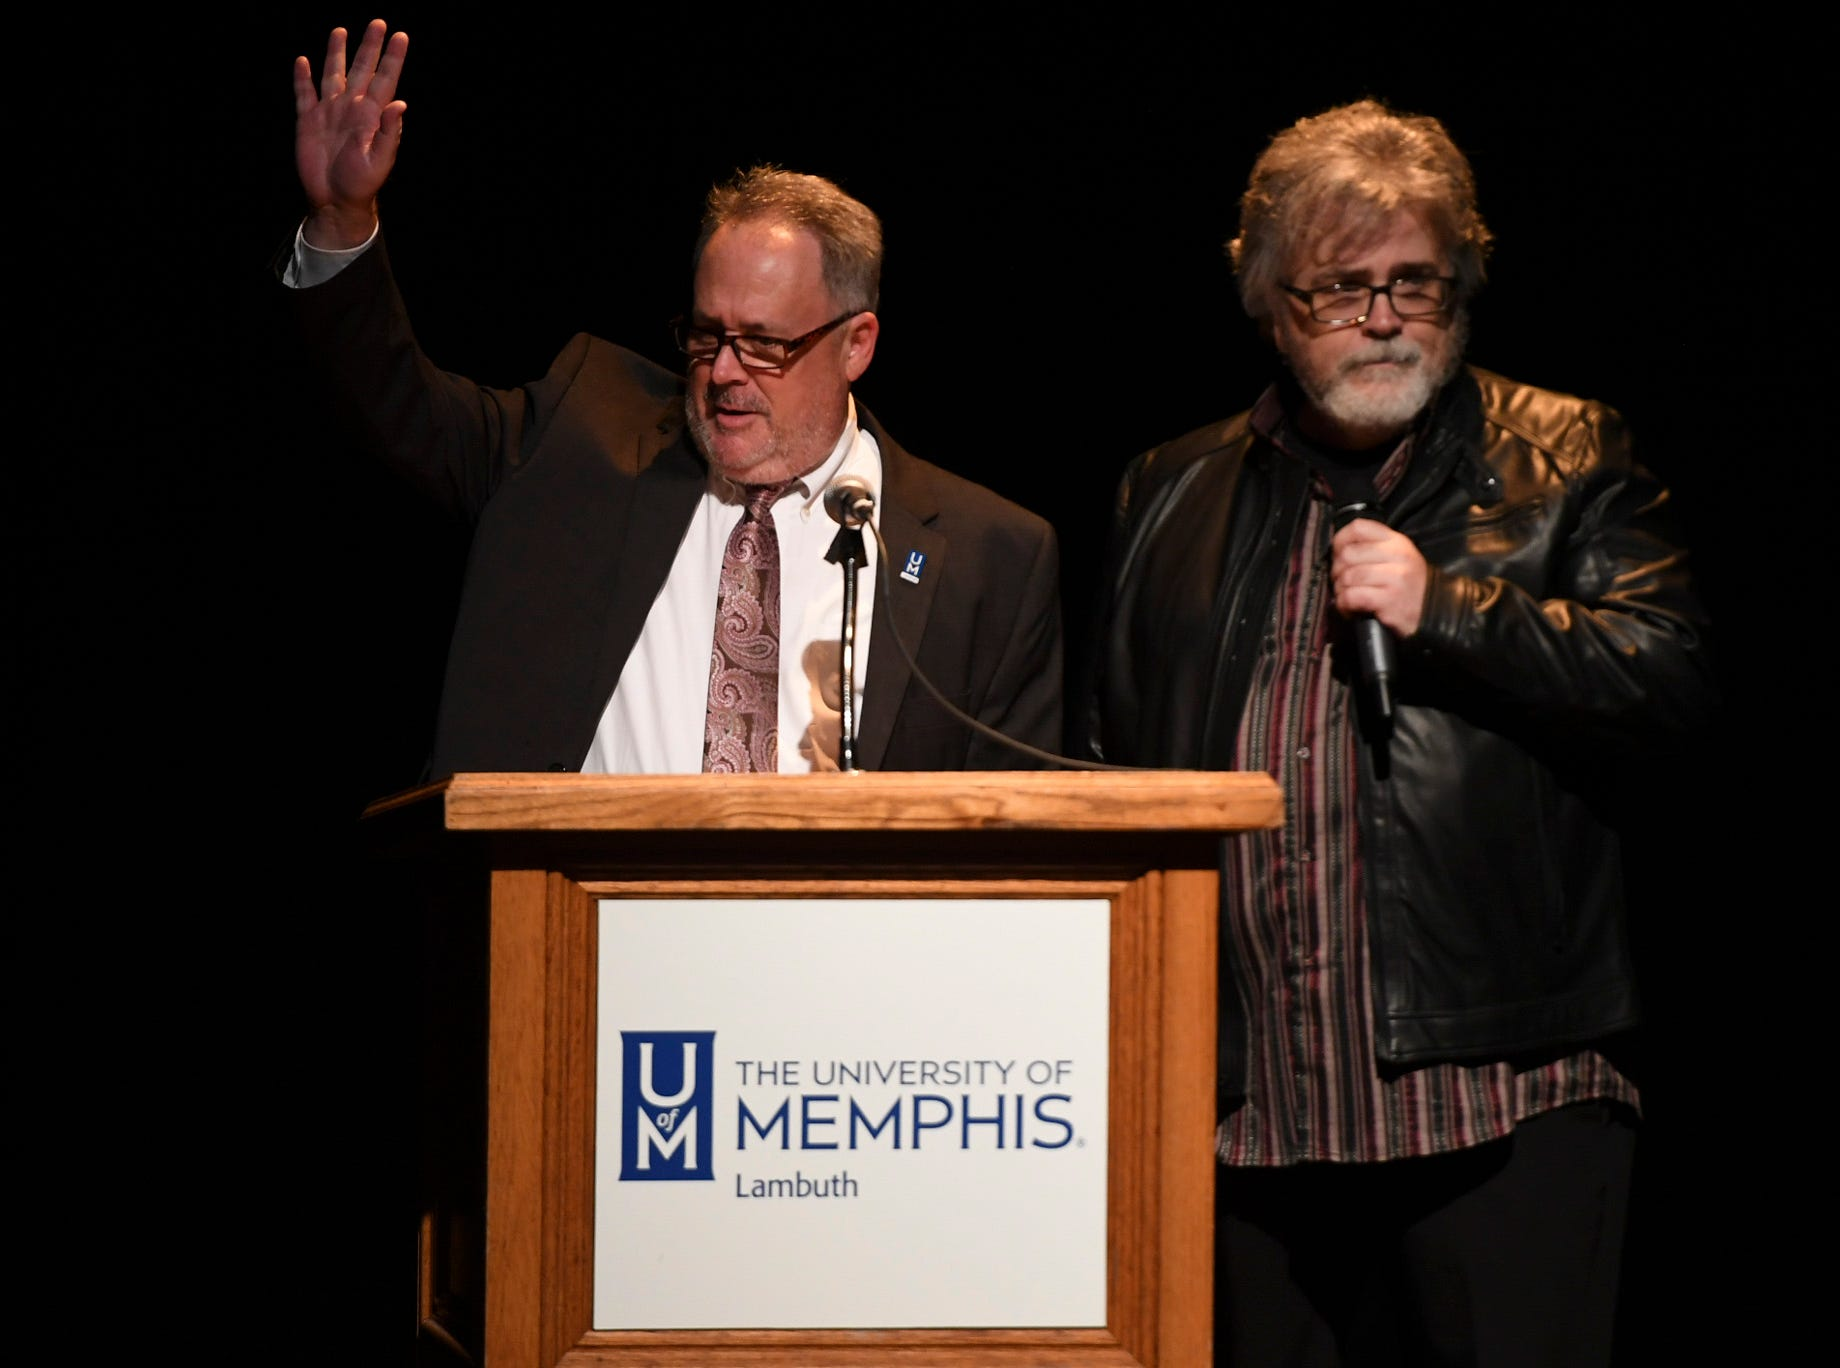 University of Memphis Lambuth's Dr. Niles Reddick and Keith Shirley presented the first Lifetime Achievement Award to WS Holland at the 2nd Annual Tennessee Music Awards, Monday, October 8, at University of Memphis Lambuth.